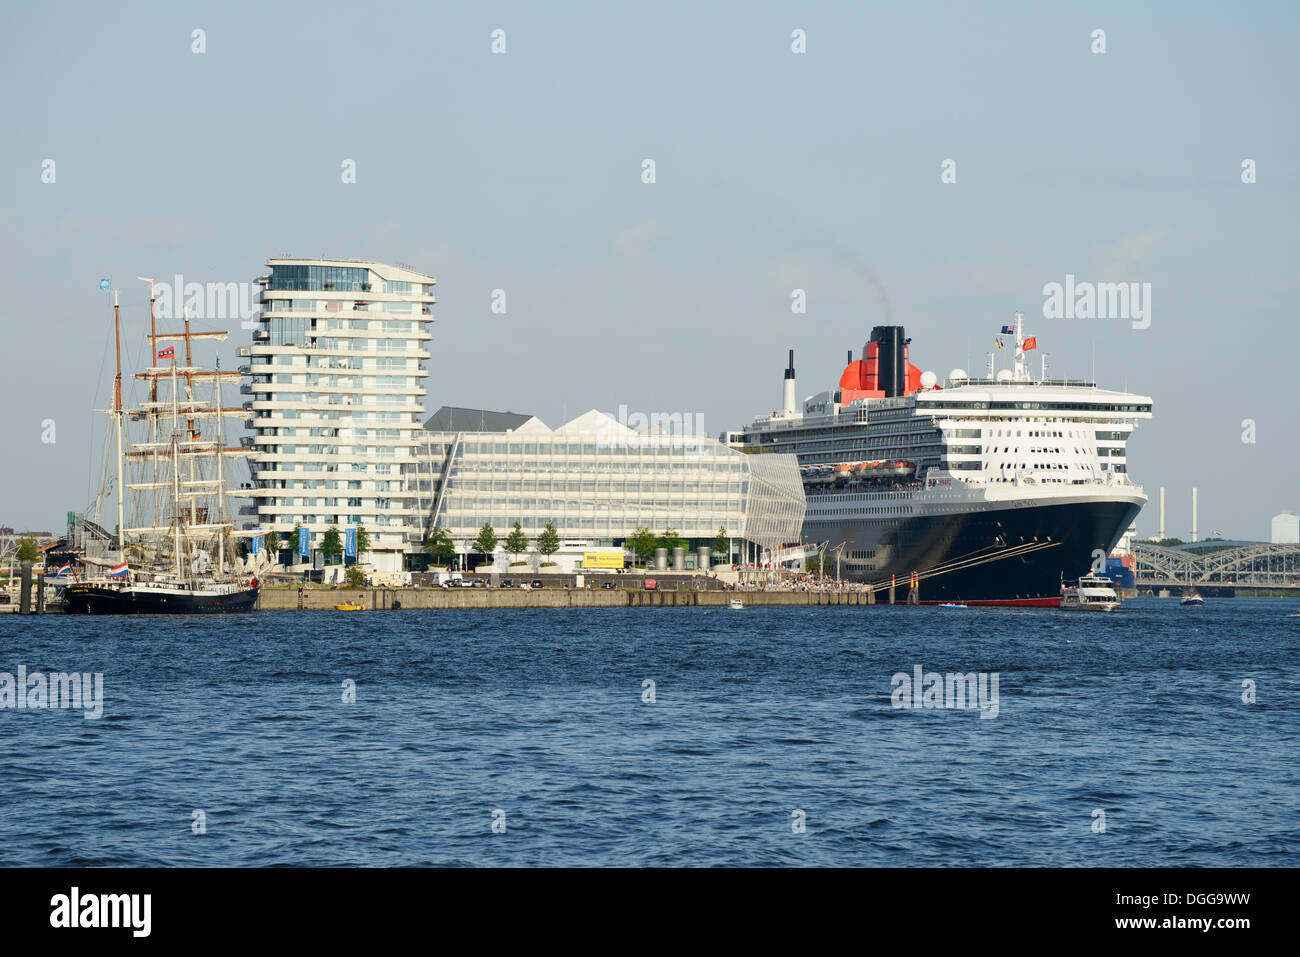 RMS Queen Mary 2 visiting during Hamburg Cruise Days in the Port of Hamburg, with the Marco Polo Tower and the Unilever - Stock Image